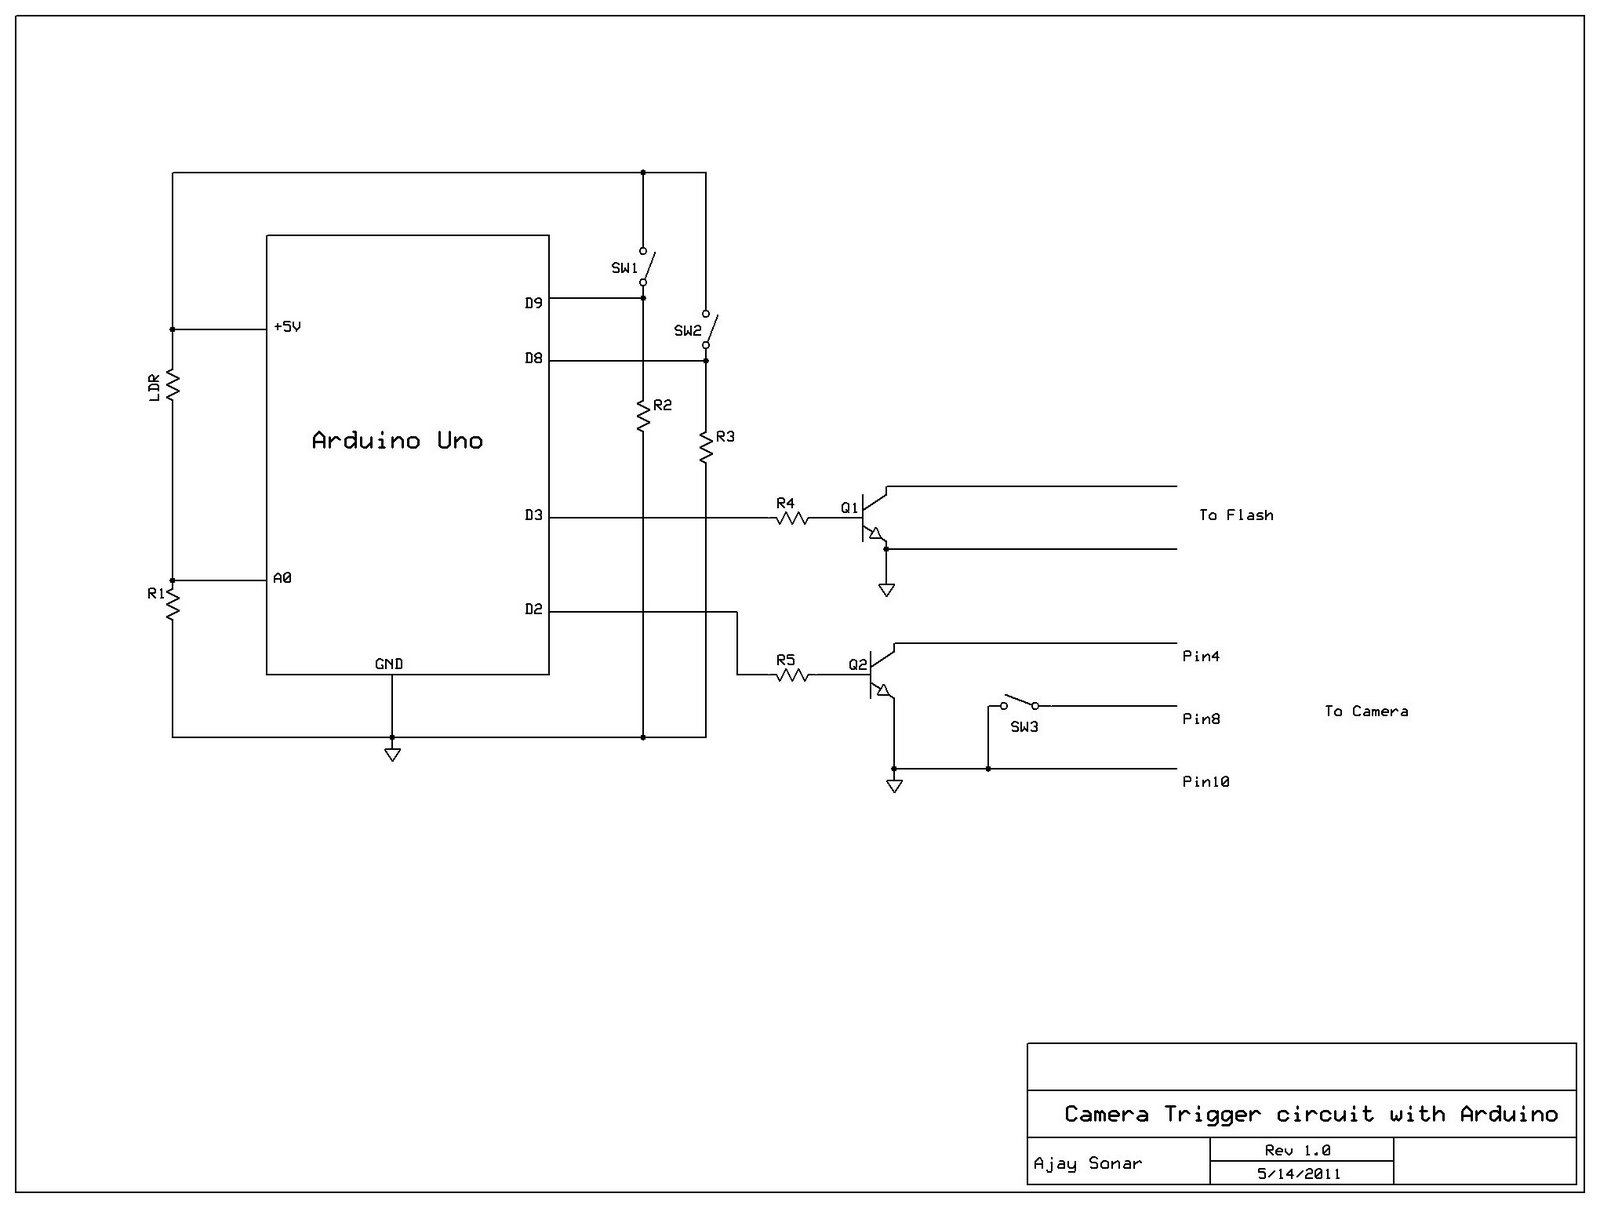 wiring diagram for 120v photocell eaton hand off auto to arduino